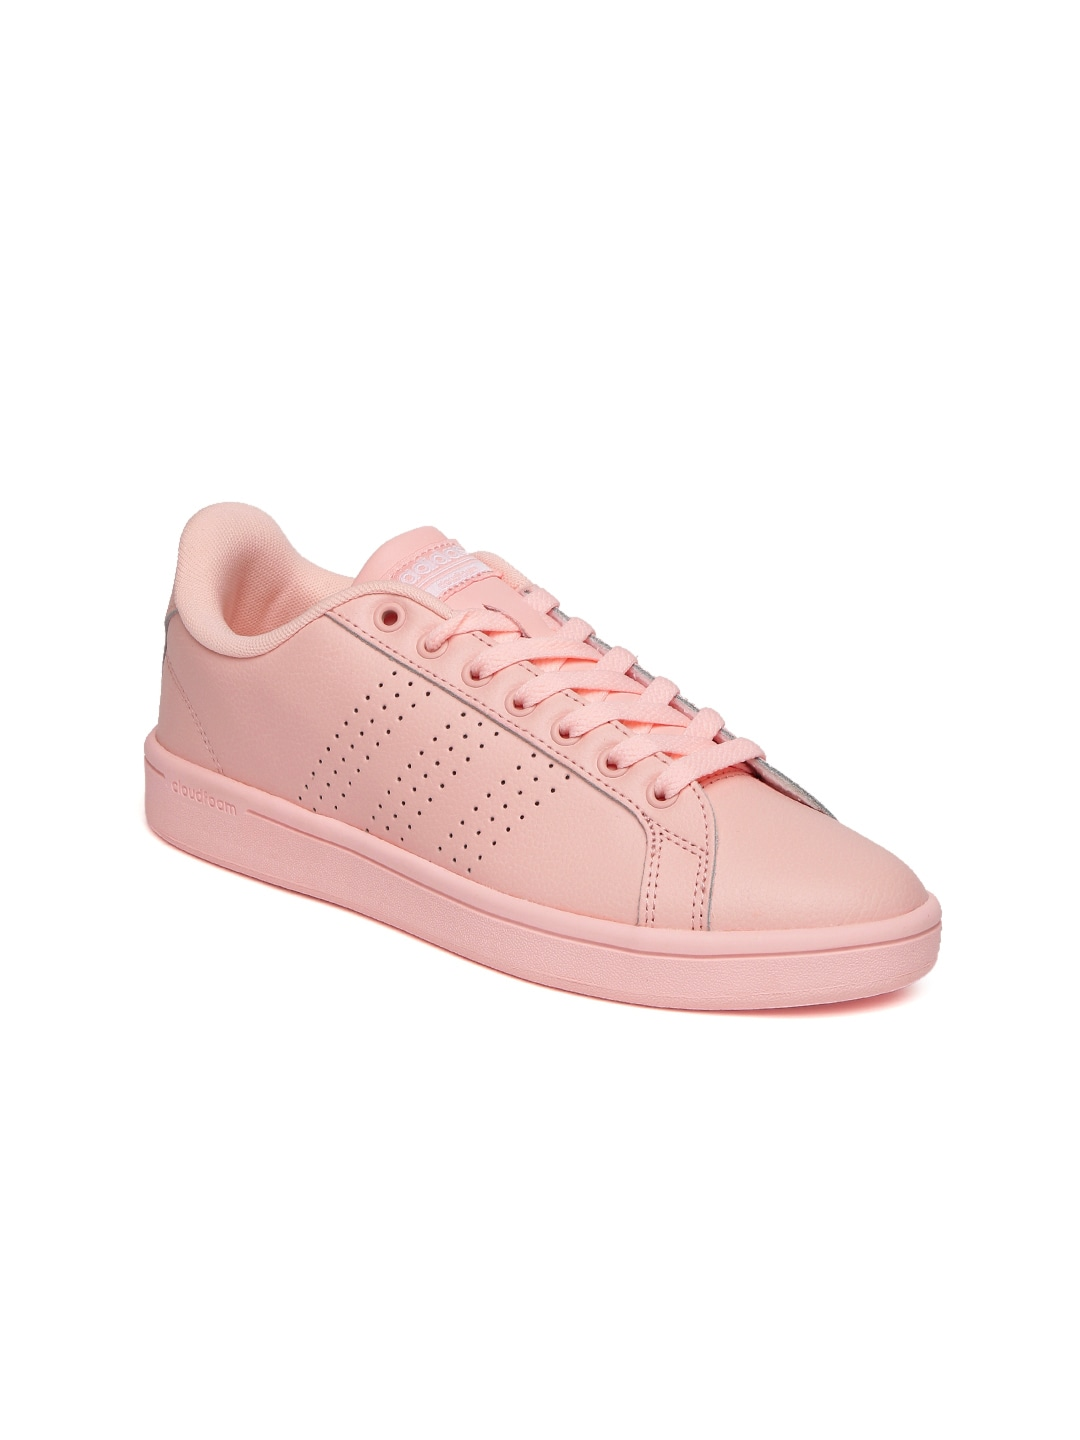 f05f3f588b3933 Adidas aw3977 Neo Women Peach Coloured Cloudfoam Advantage Clean Leather  Sneakers- Price in India